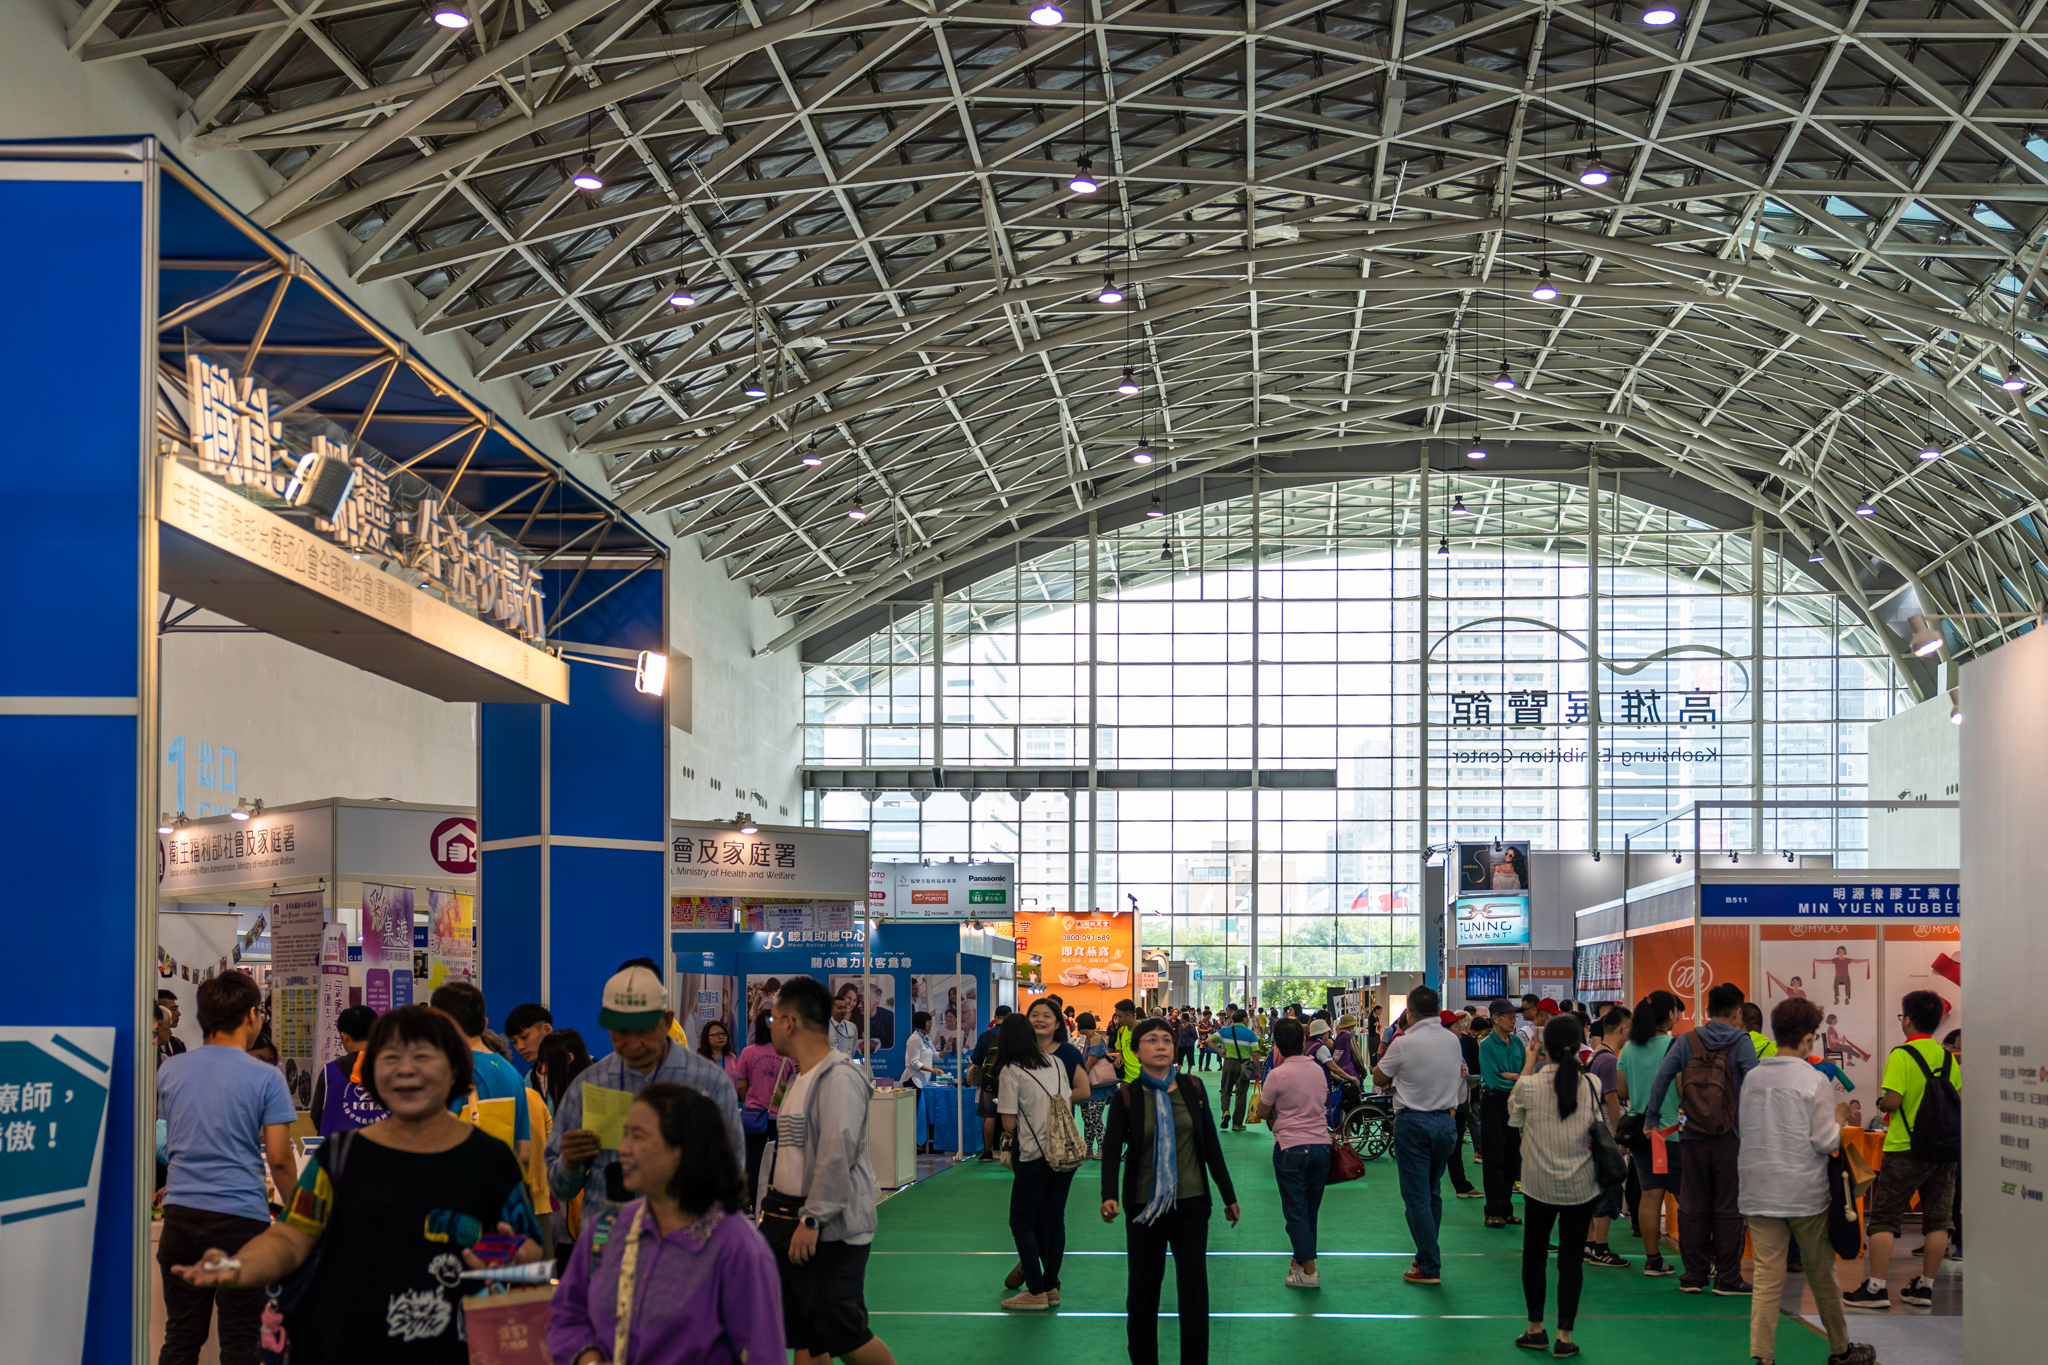 https://storage.googleapis.com/www.taiwantradeshow.com.tw/activity-photo/202004/T-66577406-name.jpg